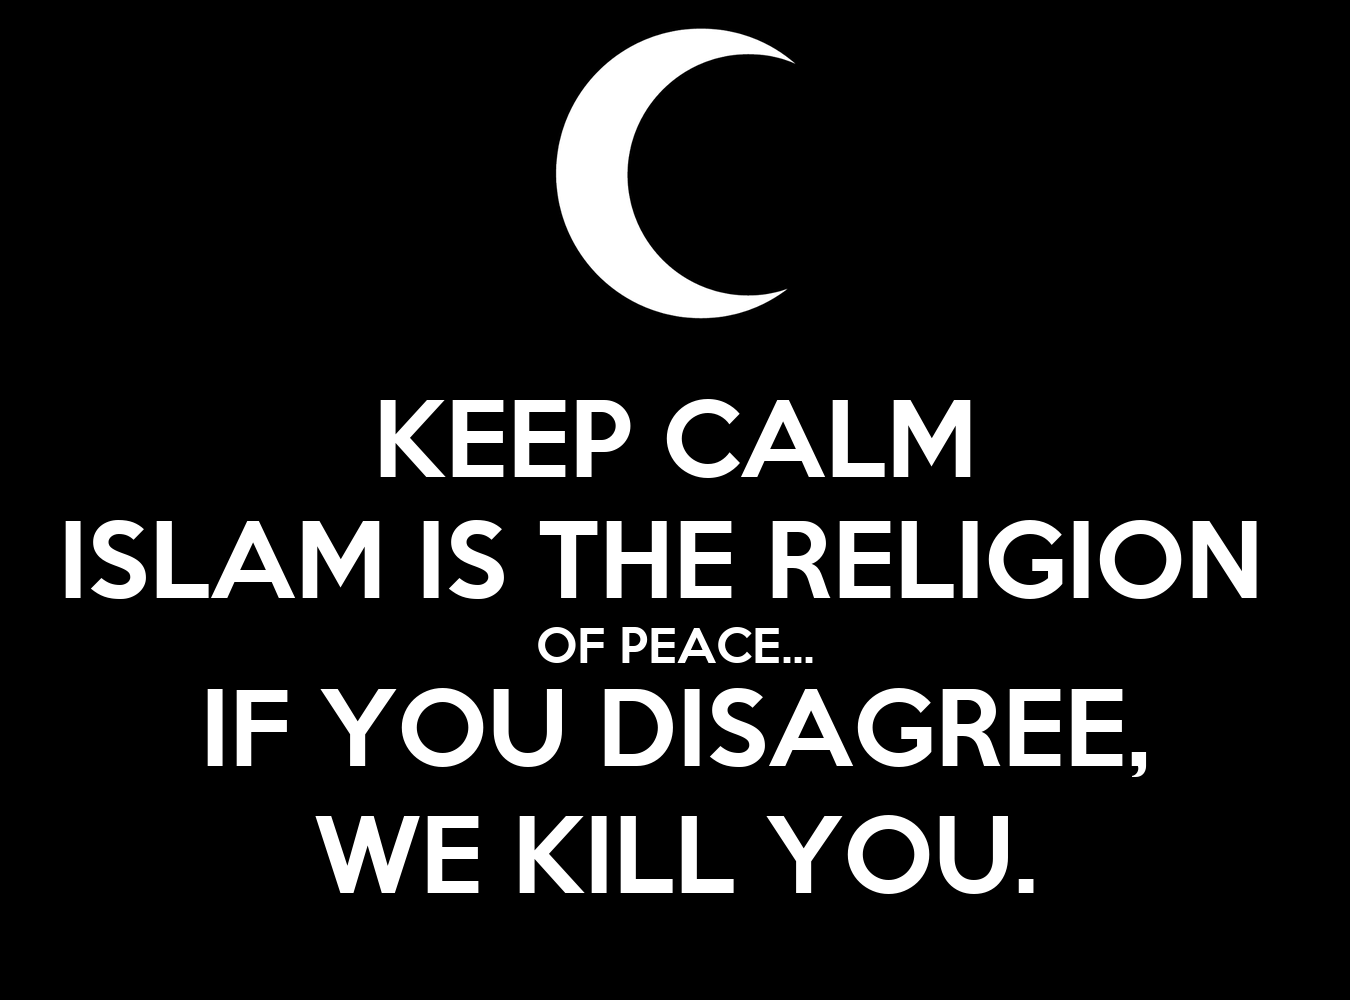 islam is a religion of peace President trump's chief strategist, former breitbart executive steve bannon, once dismissed the notion that islam is a religion of peace, describing it in.